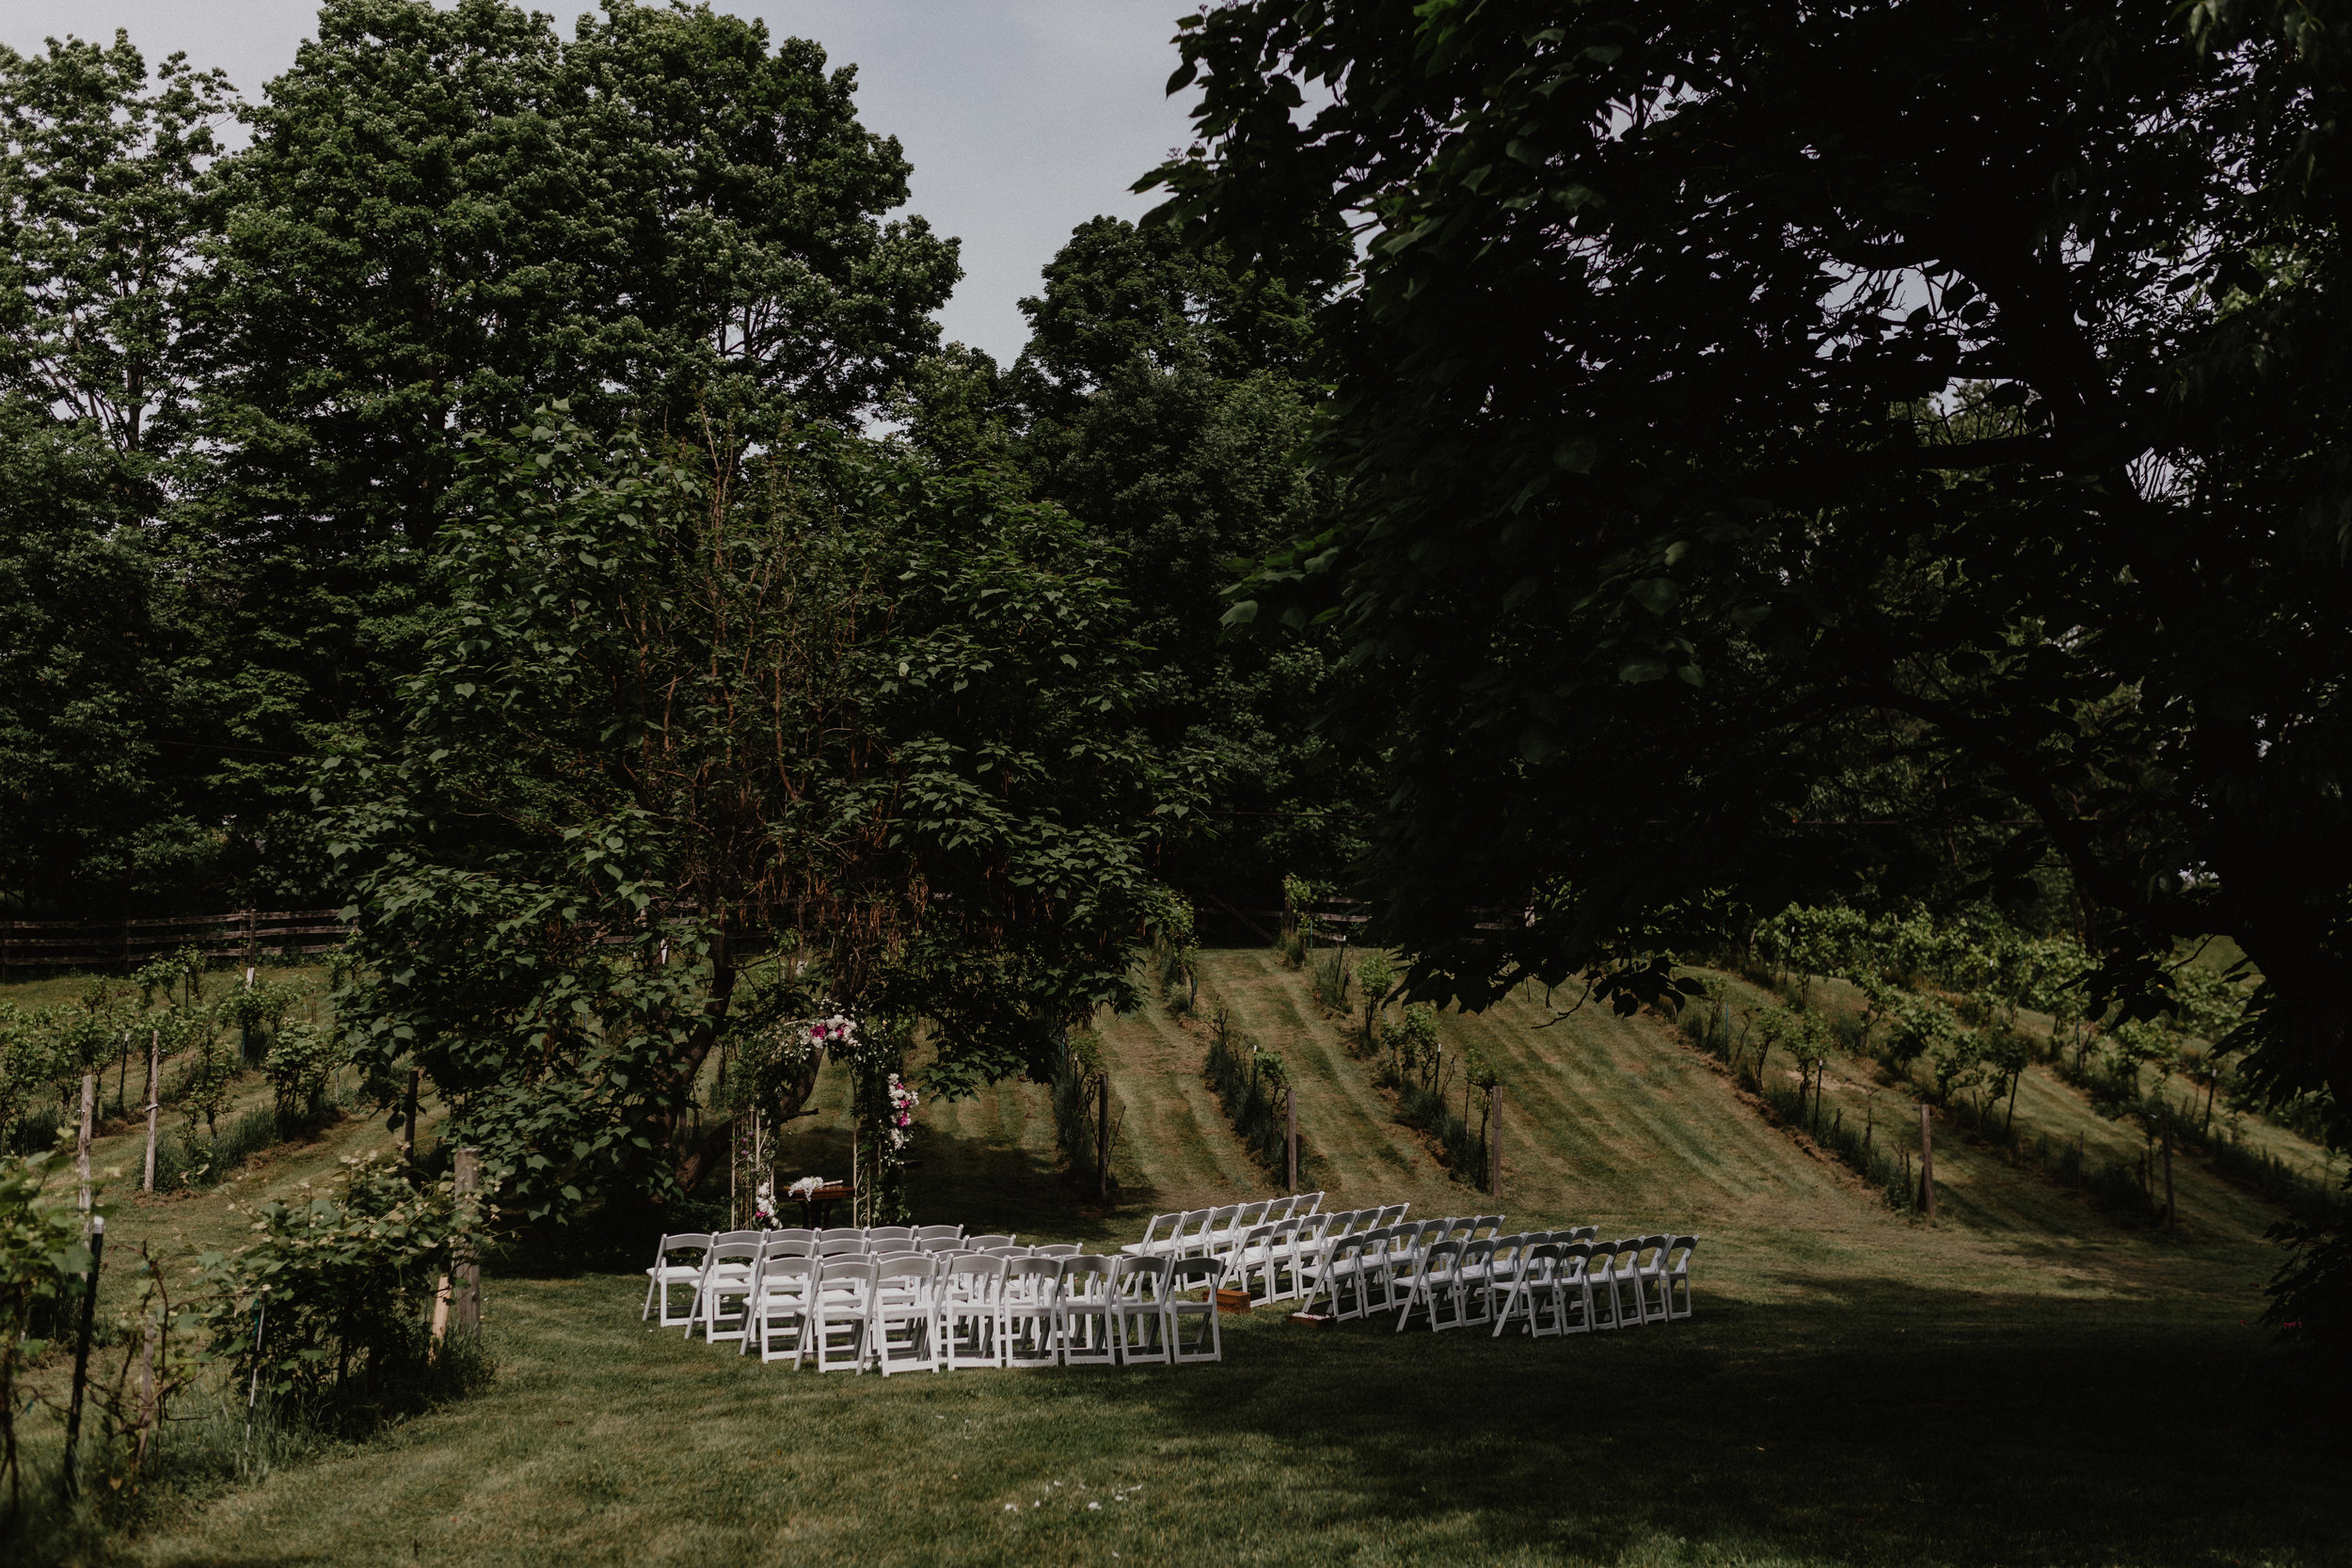 stablegate_farm_and_vineyard_wedding_048.jpg